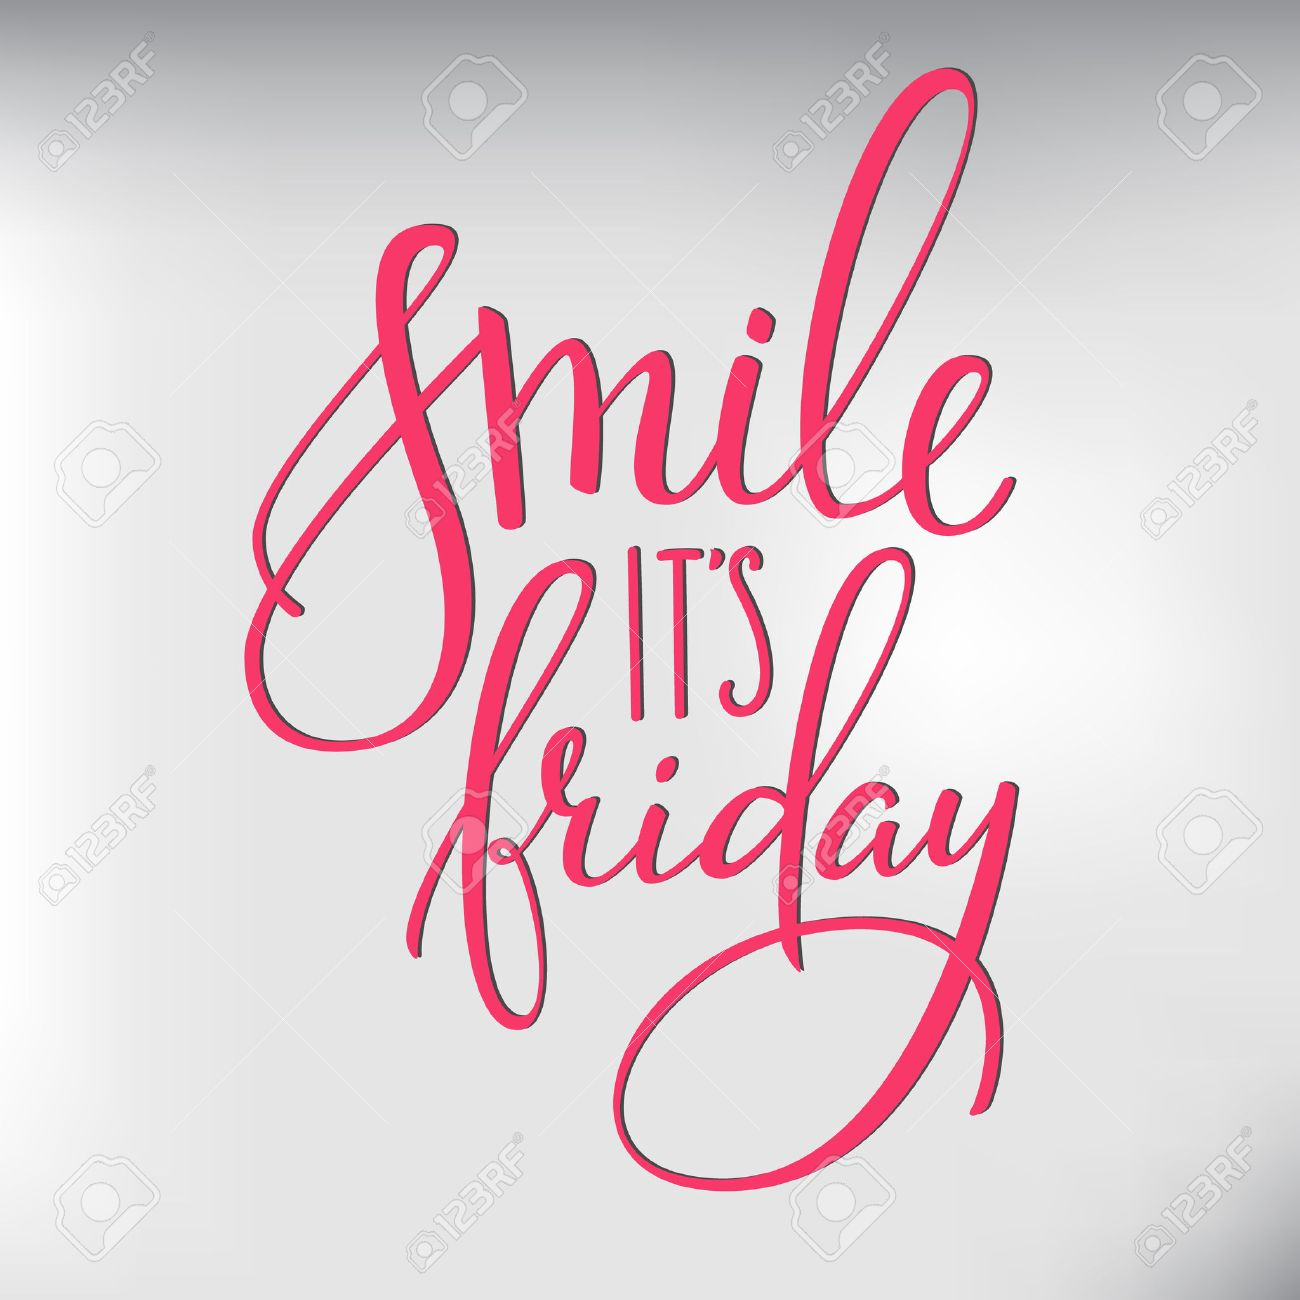 Smile its Friday lettering. Motivational quote. Weekend inspiration typography. Calligraphy postcard poster graphic design lettering element. Hand written sign. Decoration element. Hello Friday - 51079959